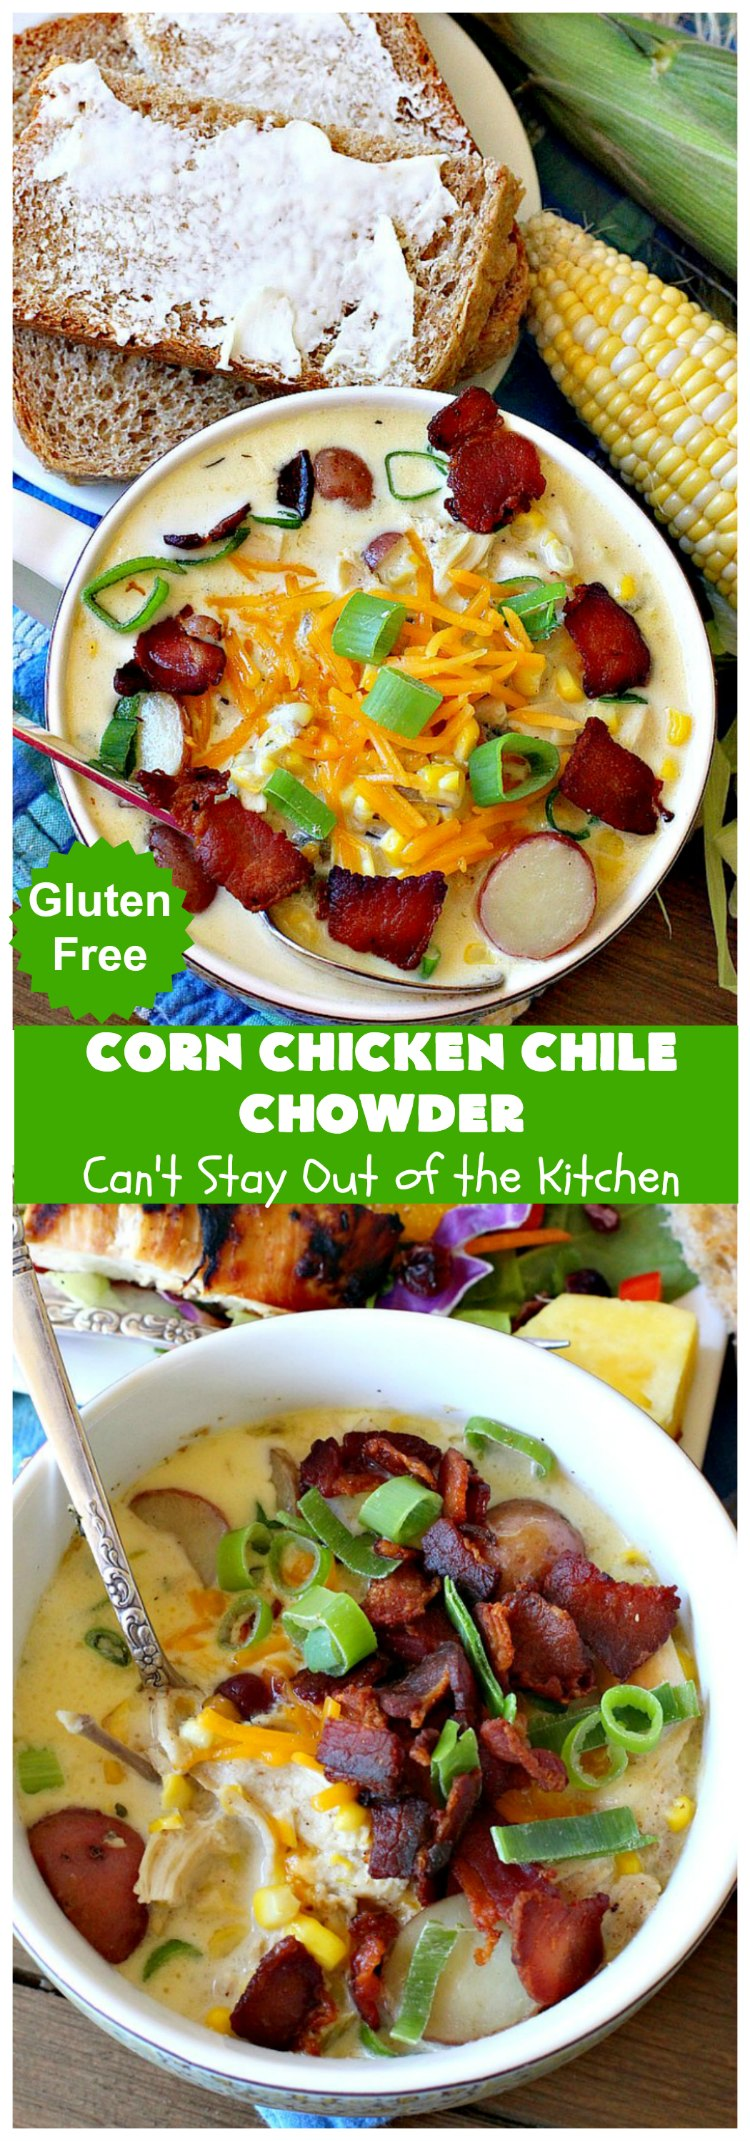 Corn Chicken Chile Chowder | Can't Stay Out of the Kitchen